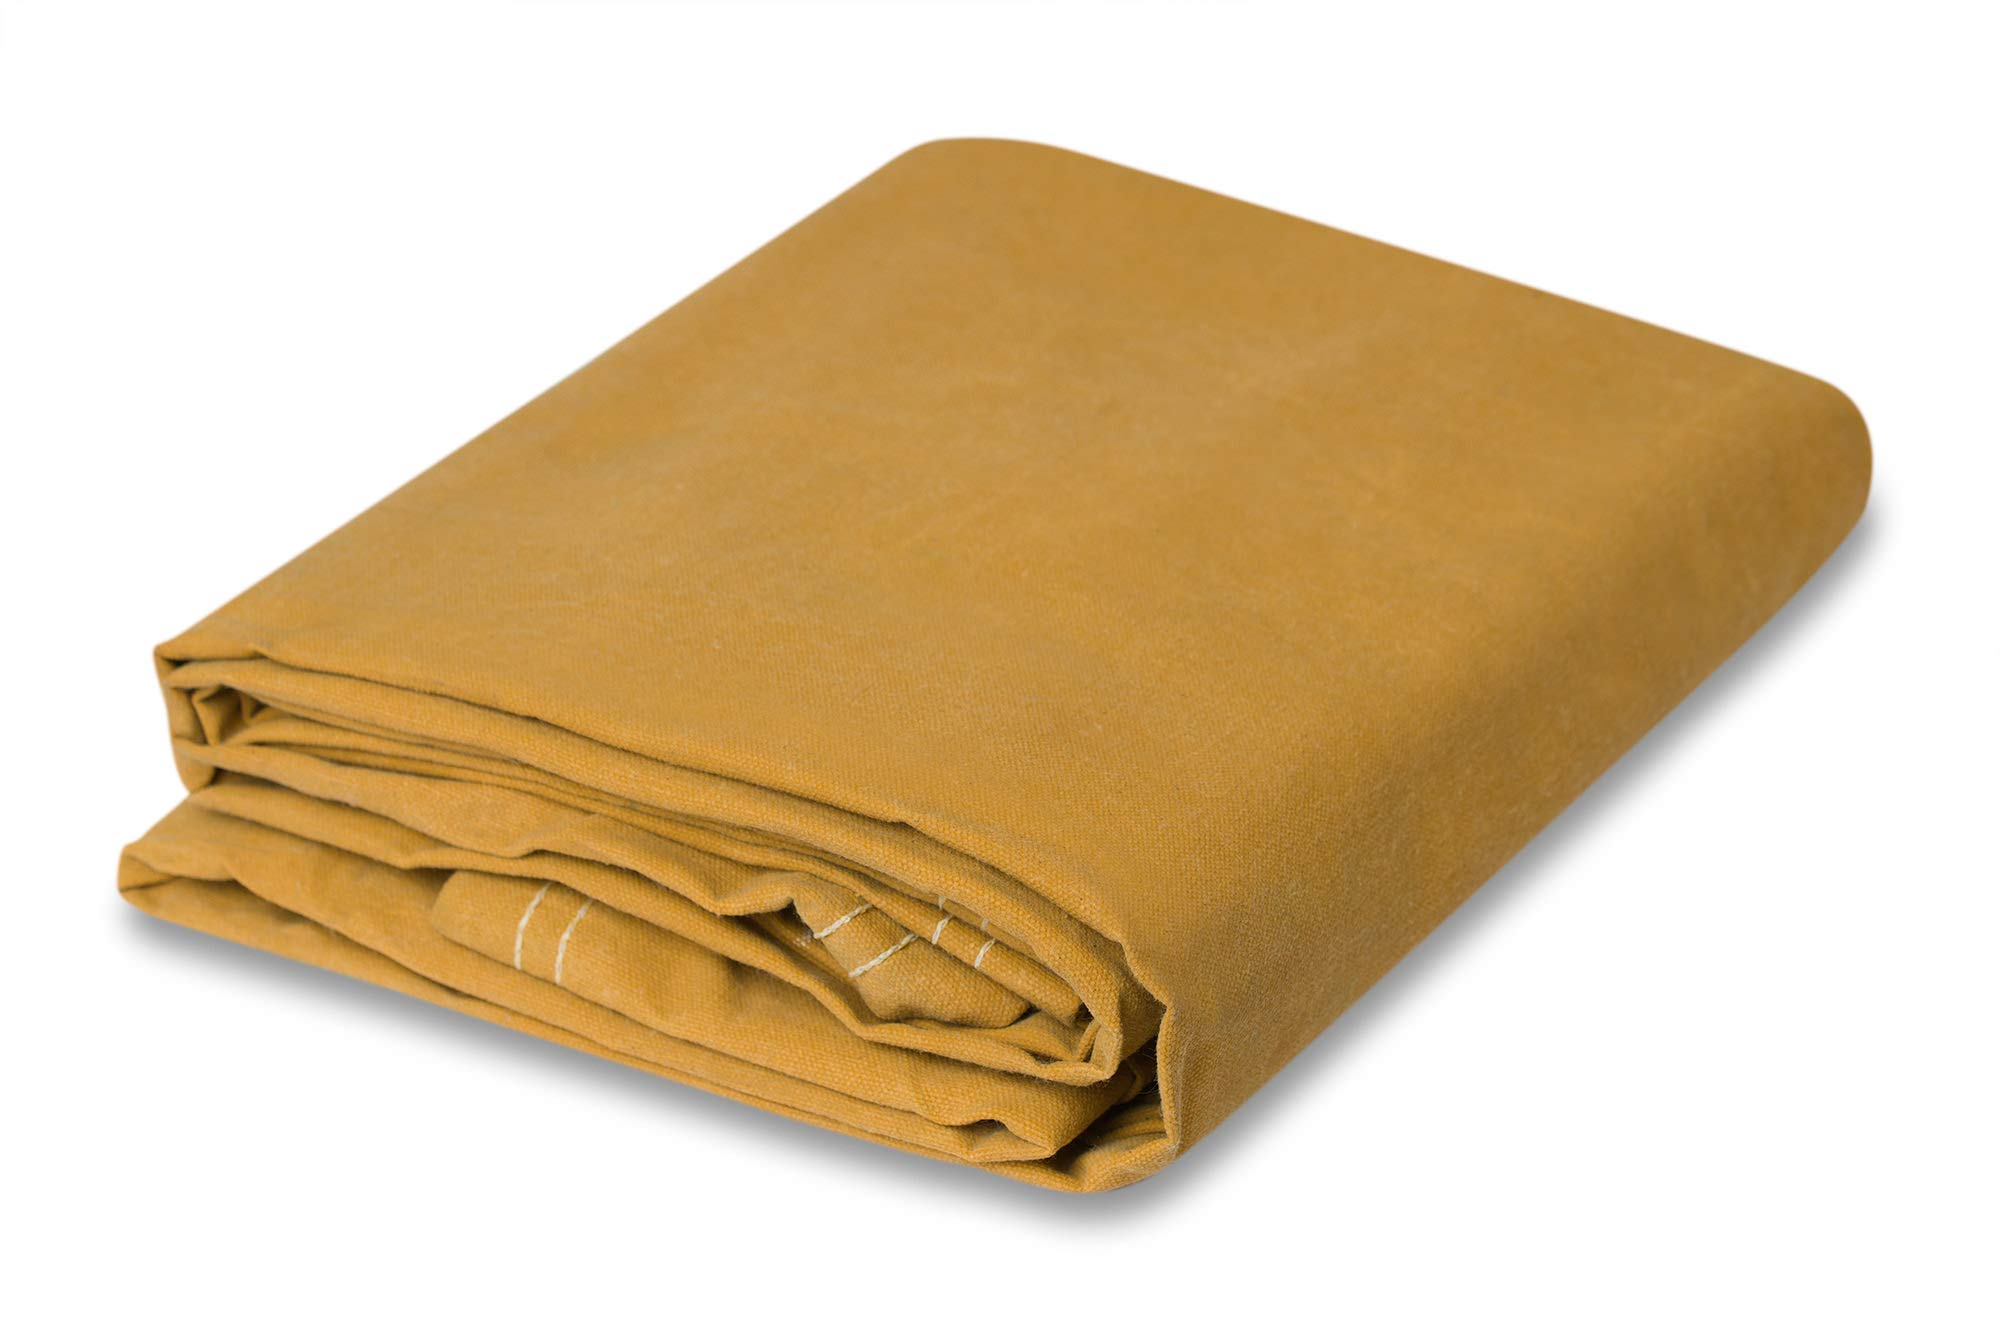 Gold Canvas Tarpaulin - Water and Mildew Resistant (8 feet x 10 feet) by CCS CHICAGO CANVAS & SUPPLY